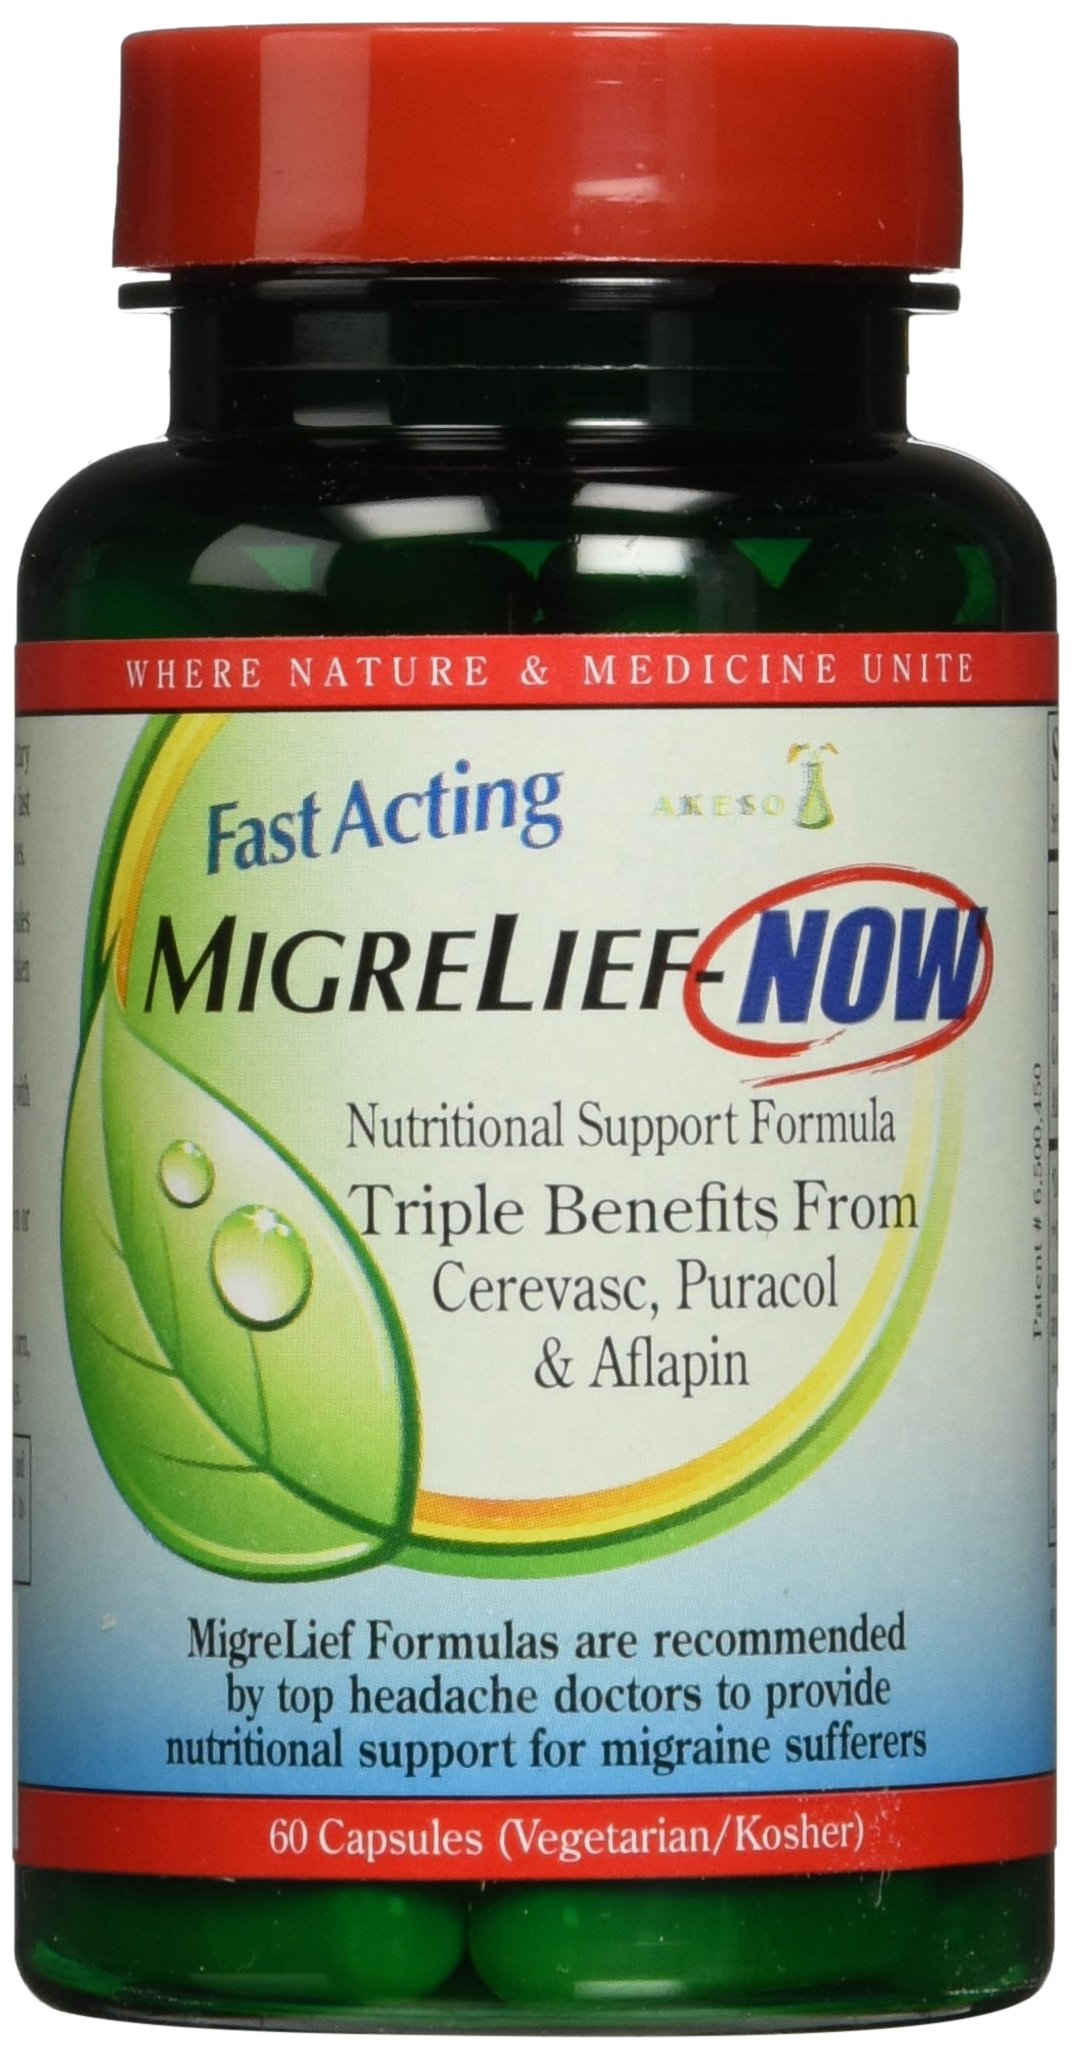 Migrelief NOW Fast Acting 60 Capsules